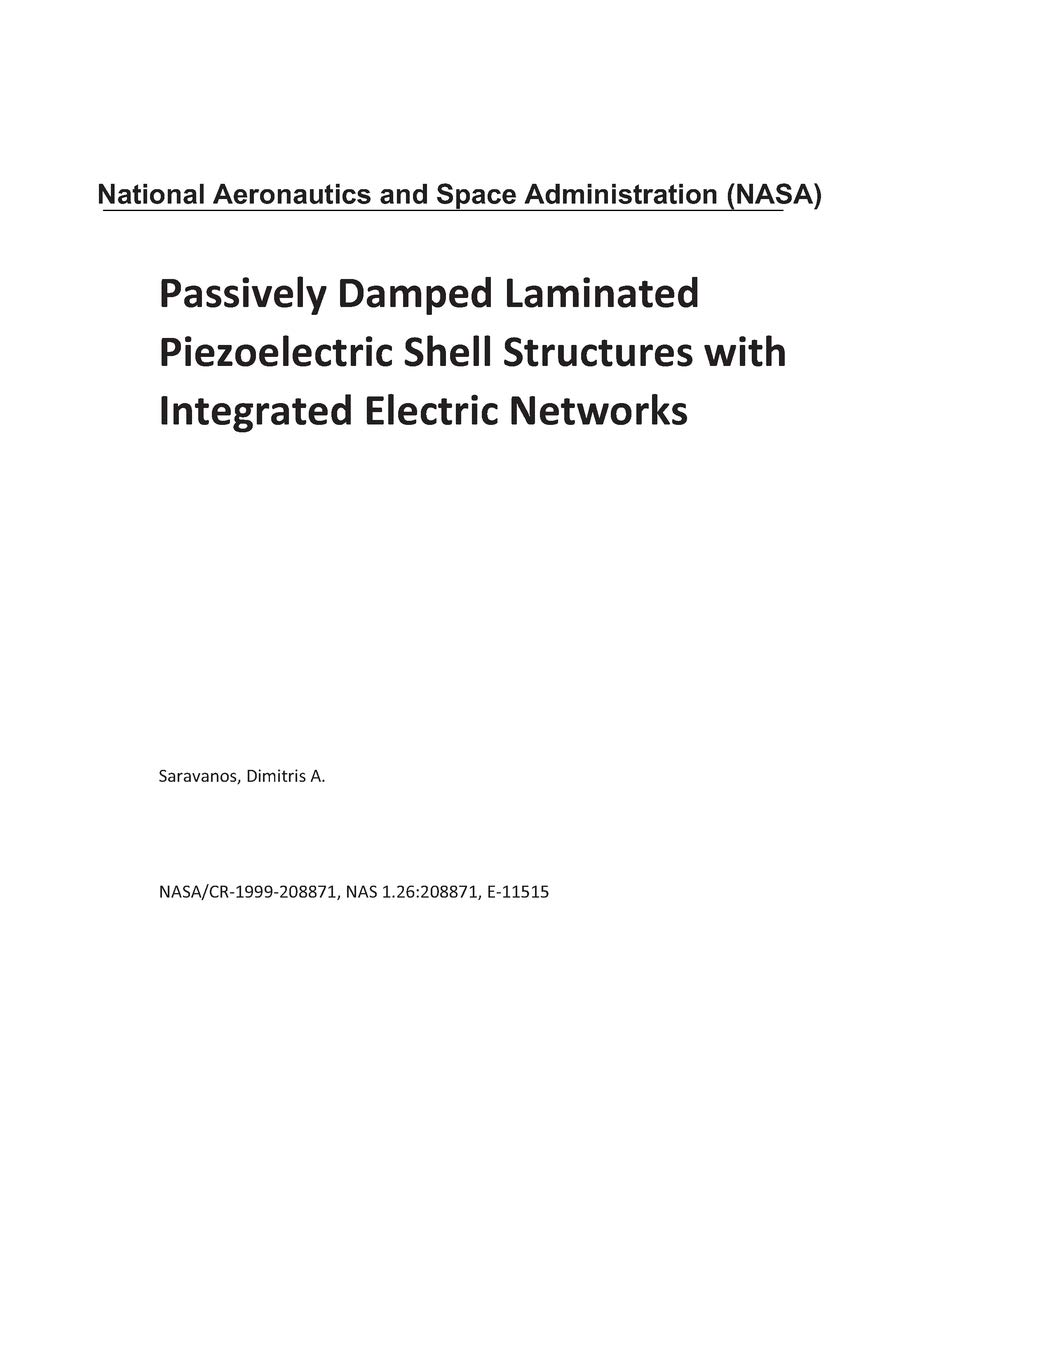 Passively Damped Laminated Piezoelectric Shell Structures